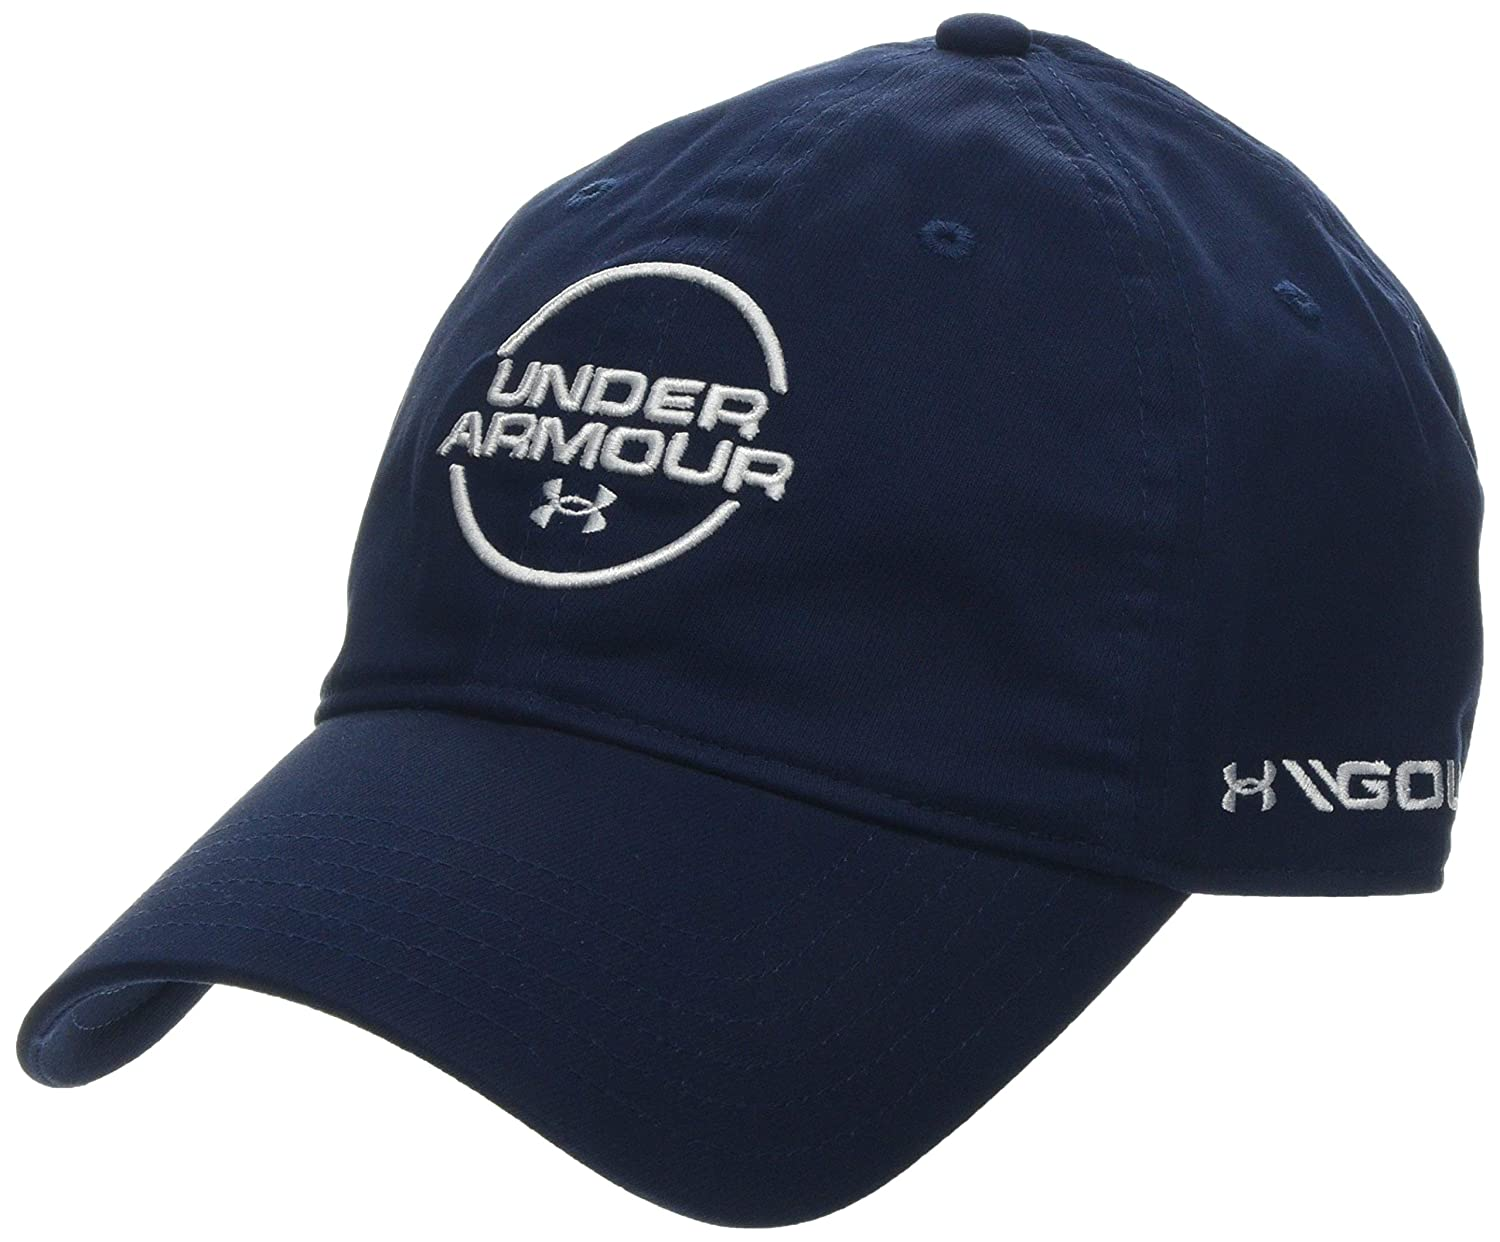 149813cb95e Amazon.com: Under Armour Jordan Spieth Washed Cotton Cap, Academy//White,  One Size Fits All: Sports & Outdoors